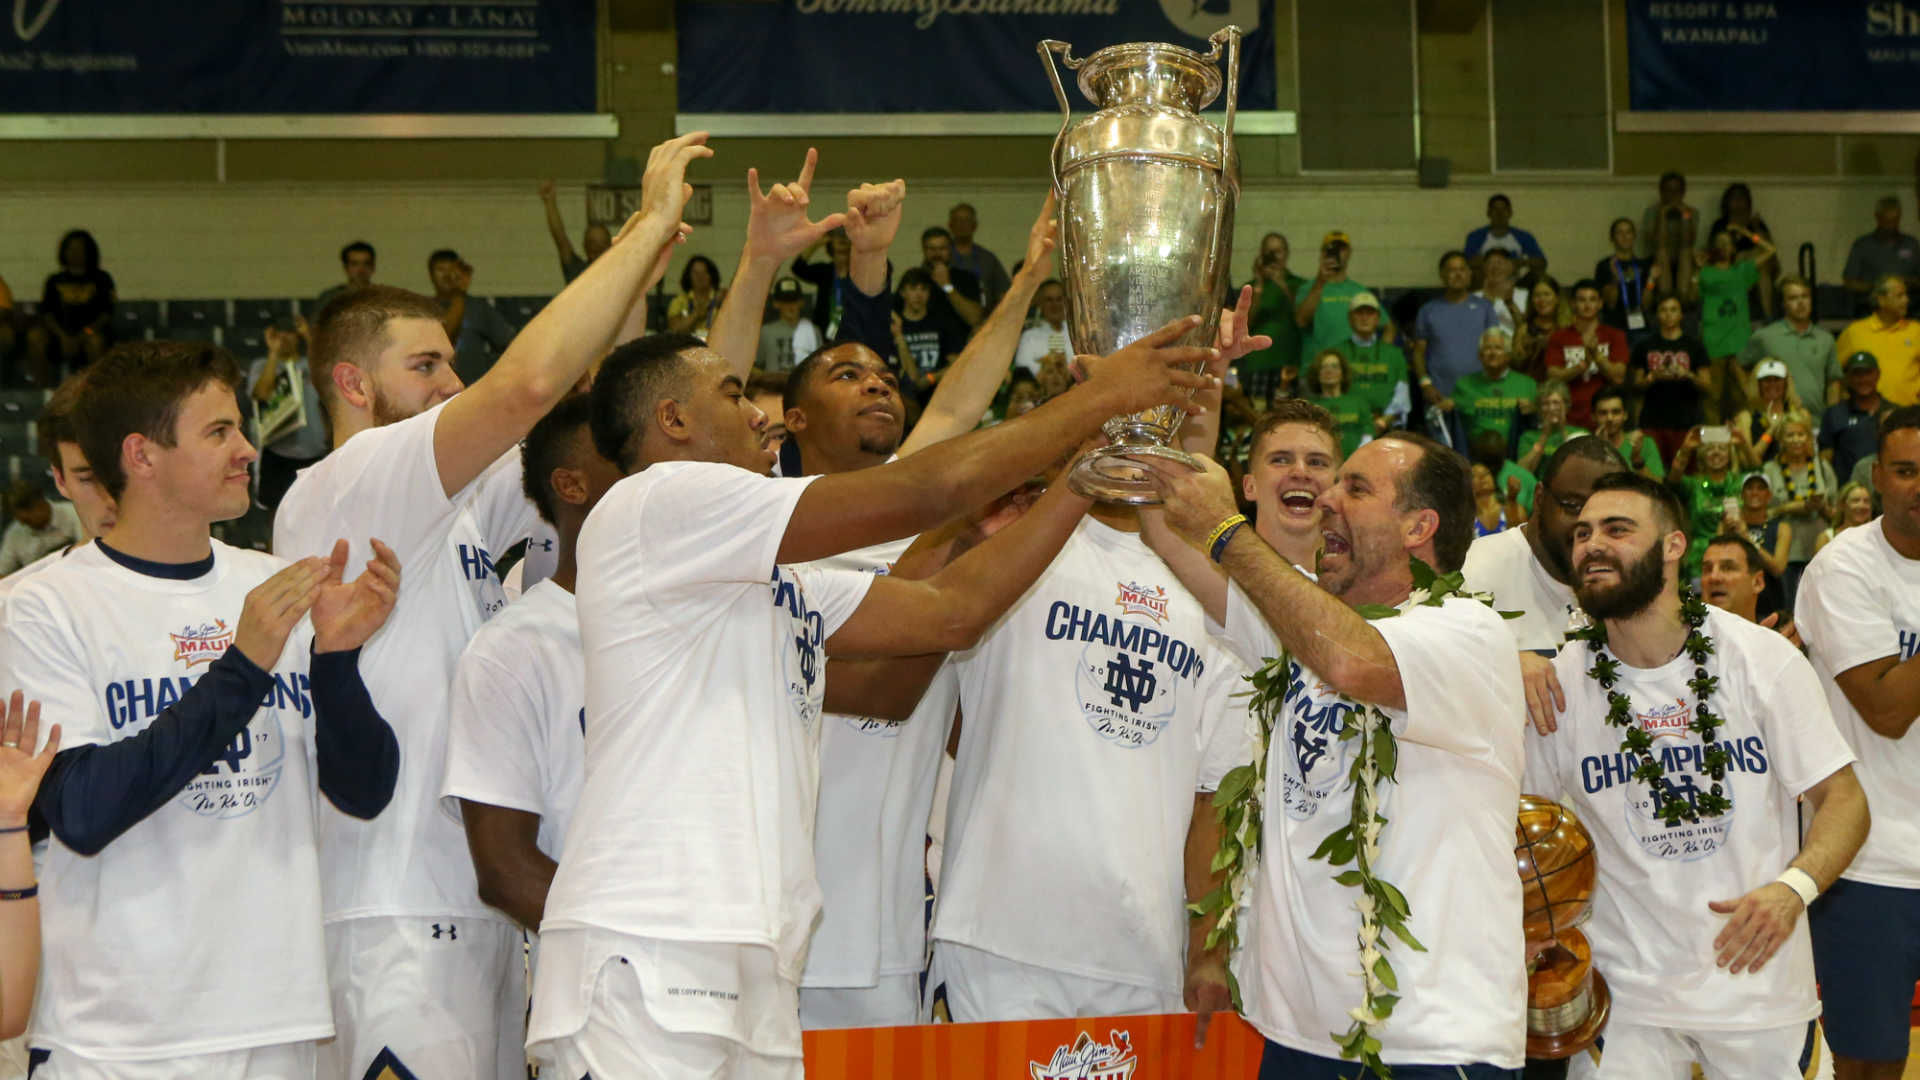 WATCH: Try to unsee shirtless Mike Brey celebrating Maui title